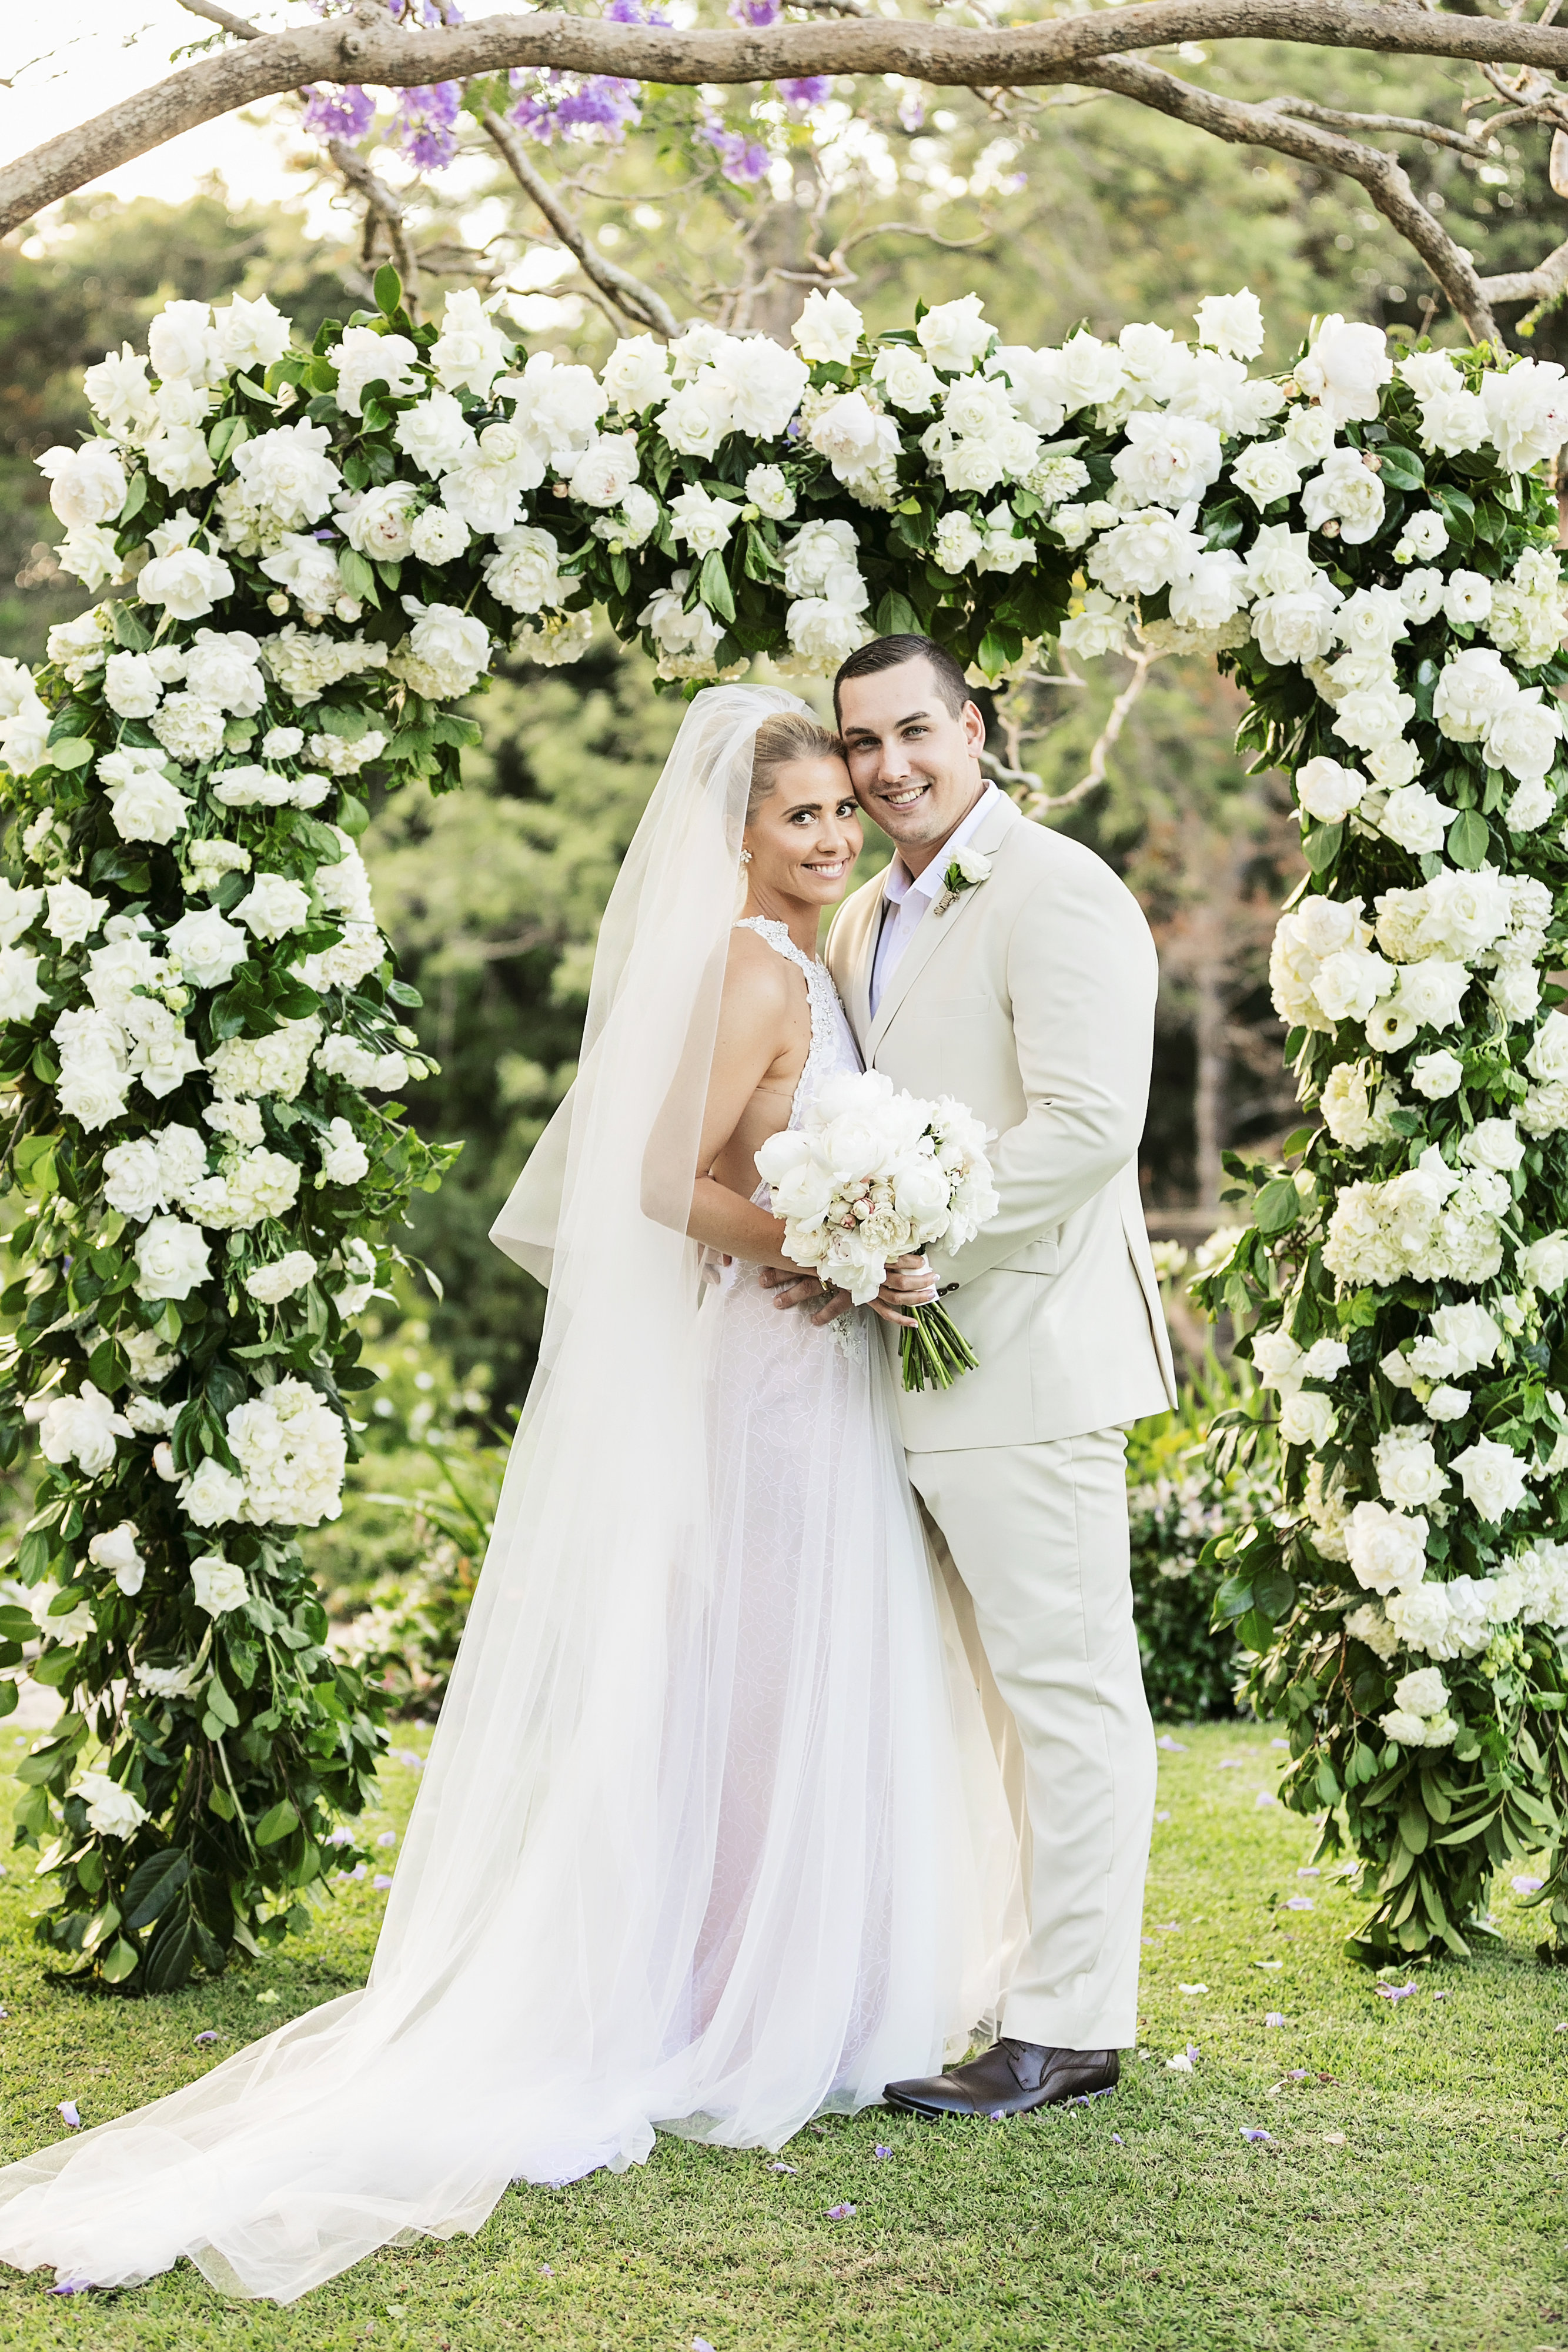 Ceremony arbour featuring lush greenery and white blooms